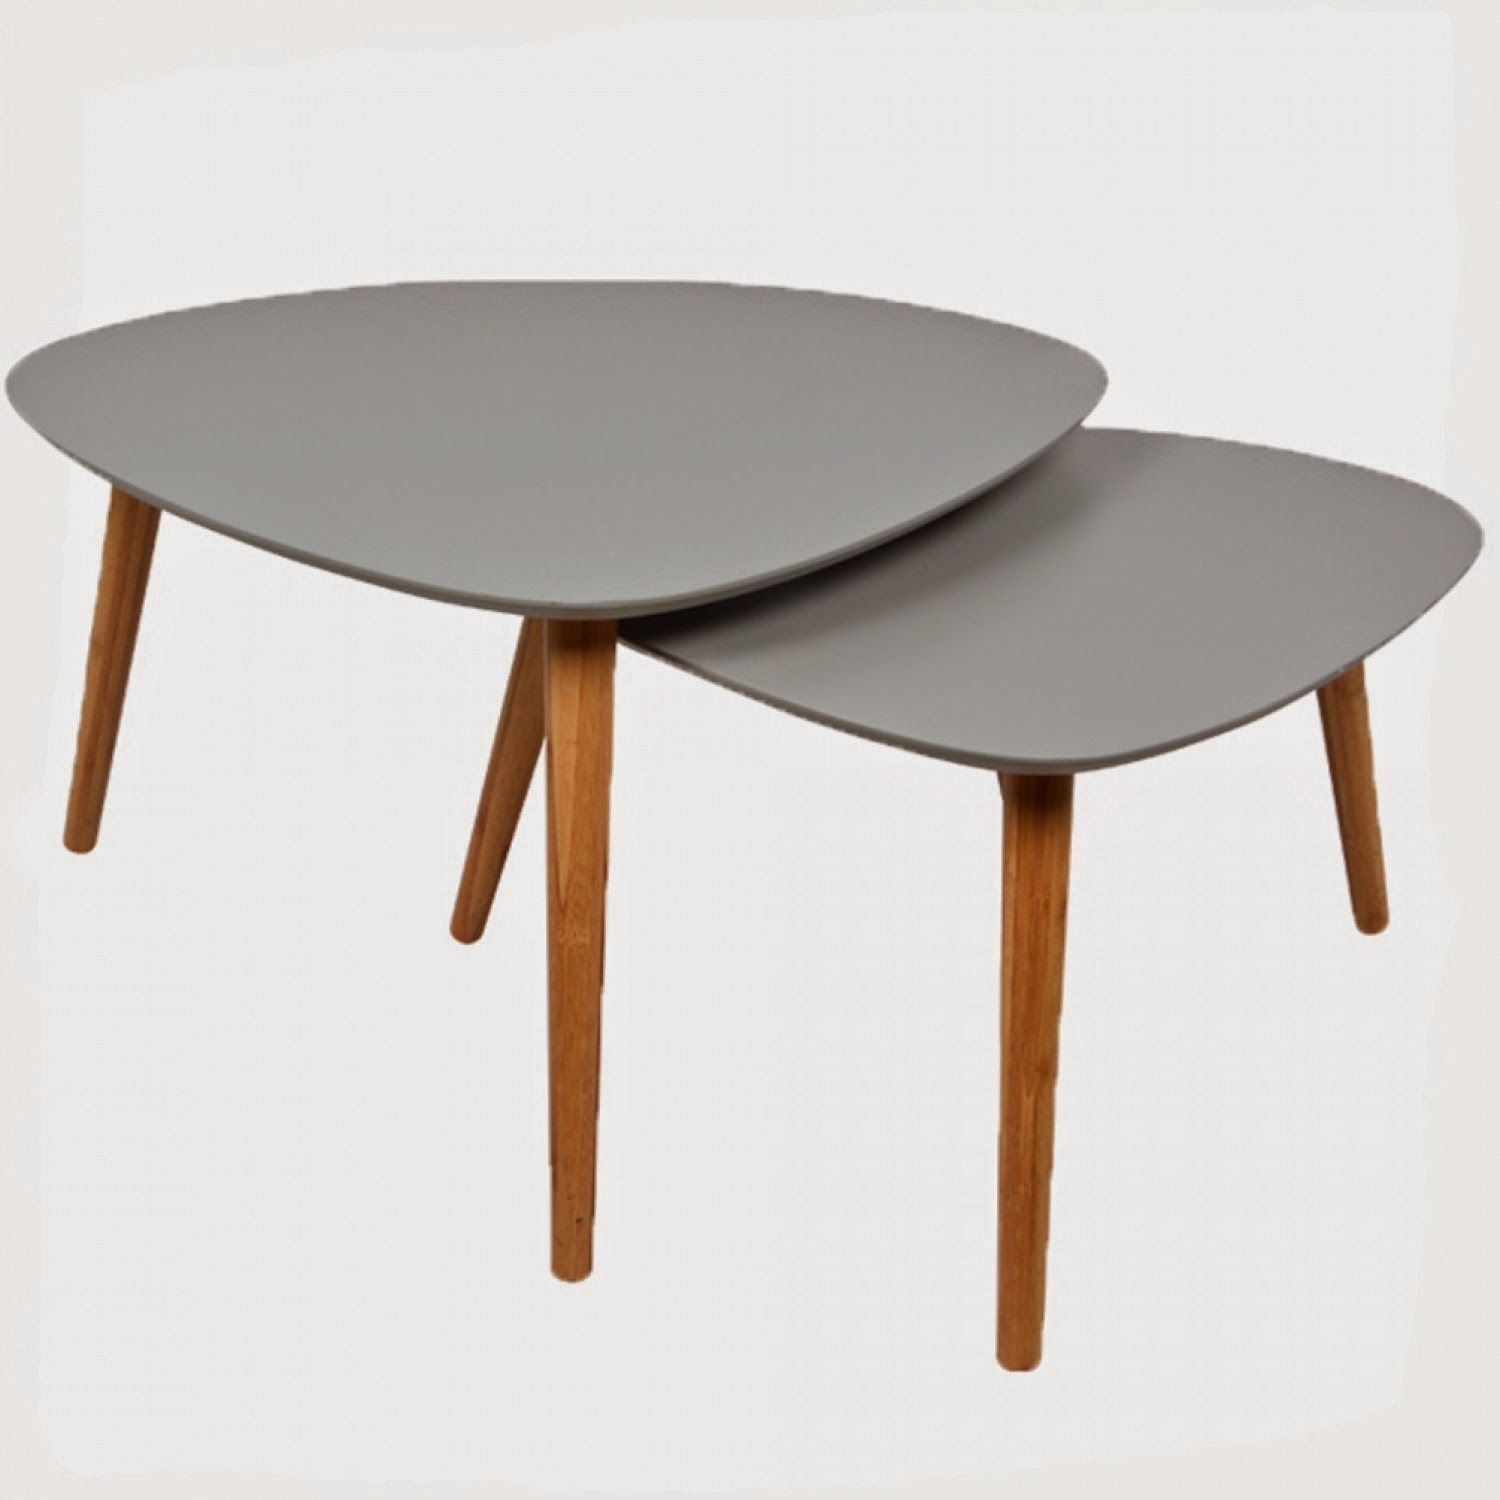 Ou trouver une table basse originale for 2 tables basses gigognes